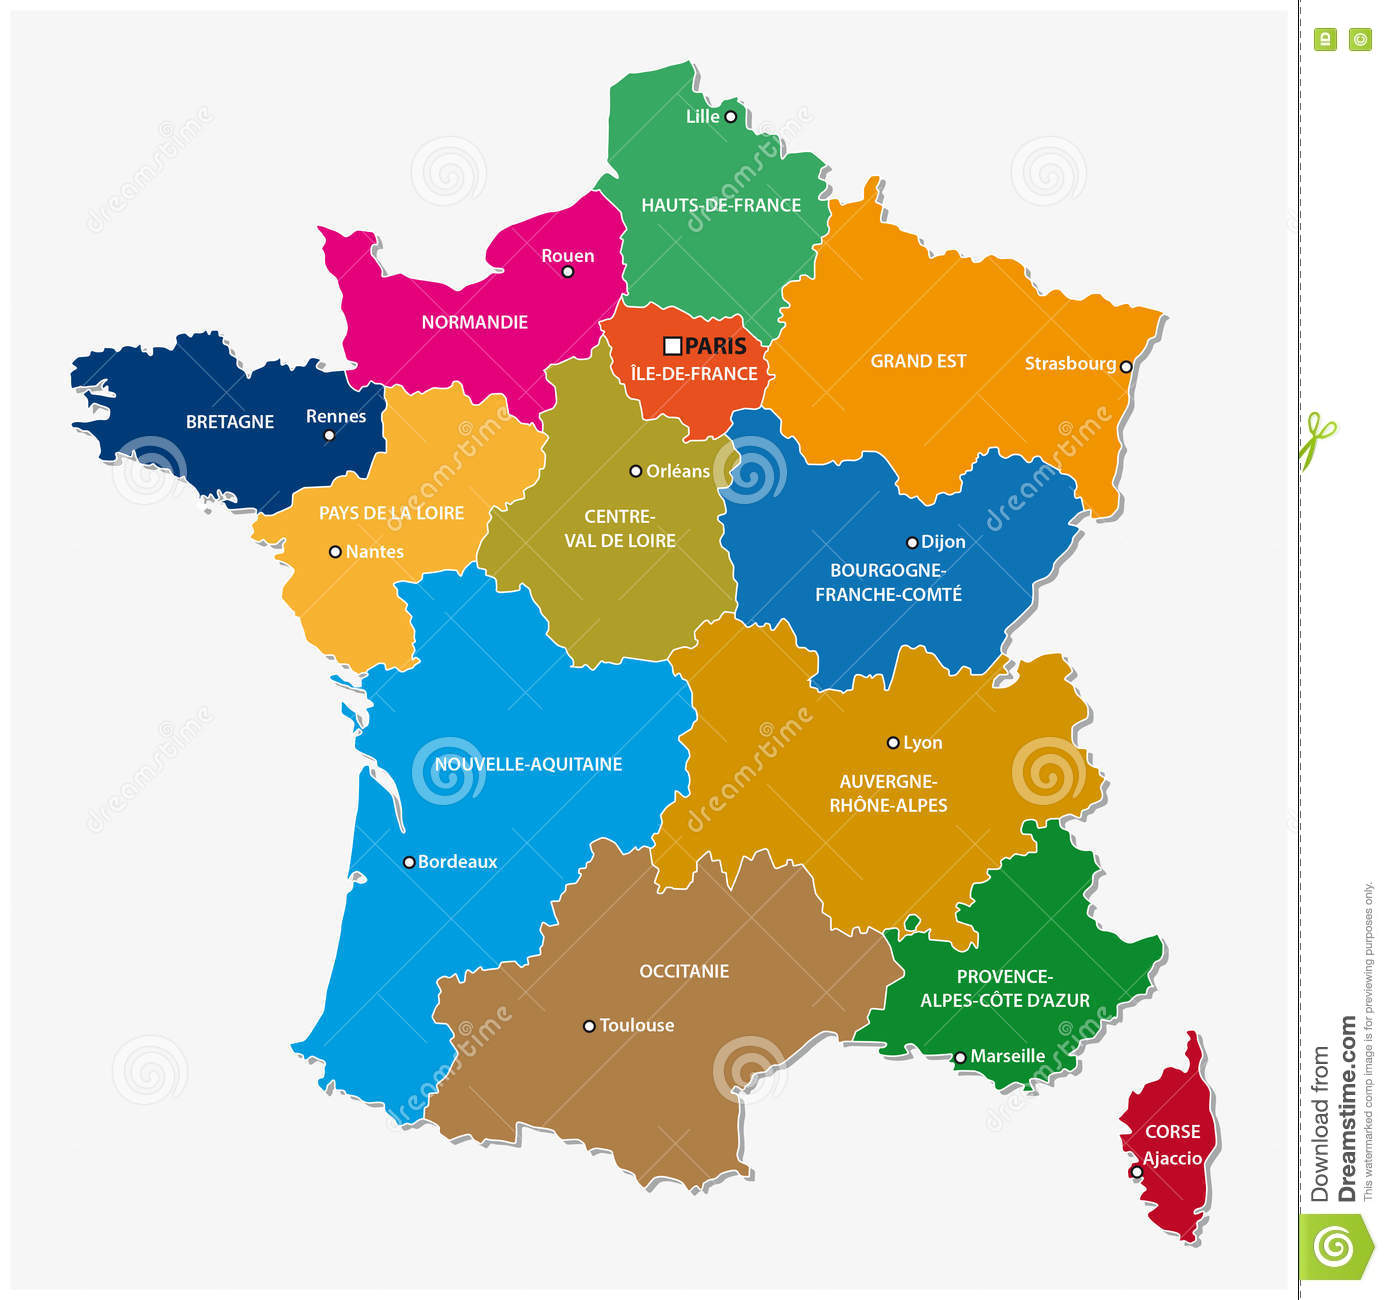 Regions In France Map.Administrative Map Of The 13 Regions Of France Since 2016 Stock